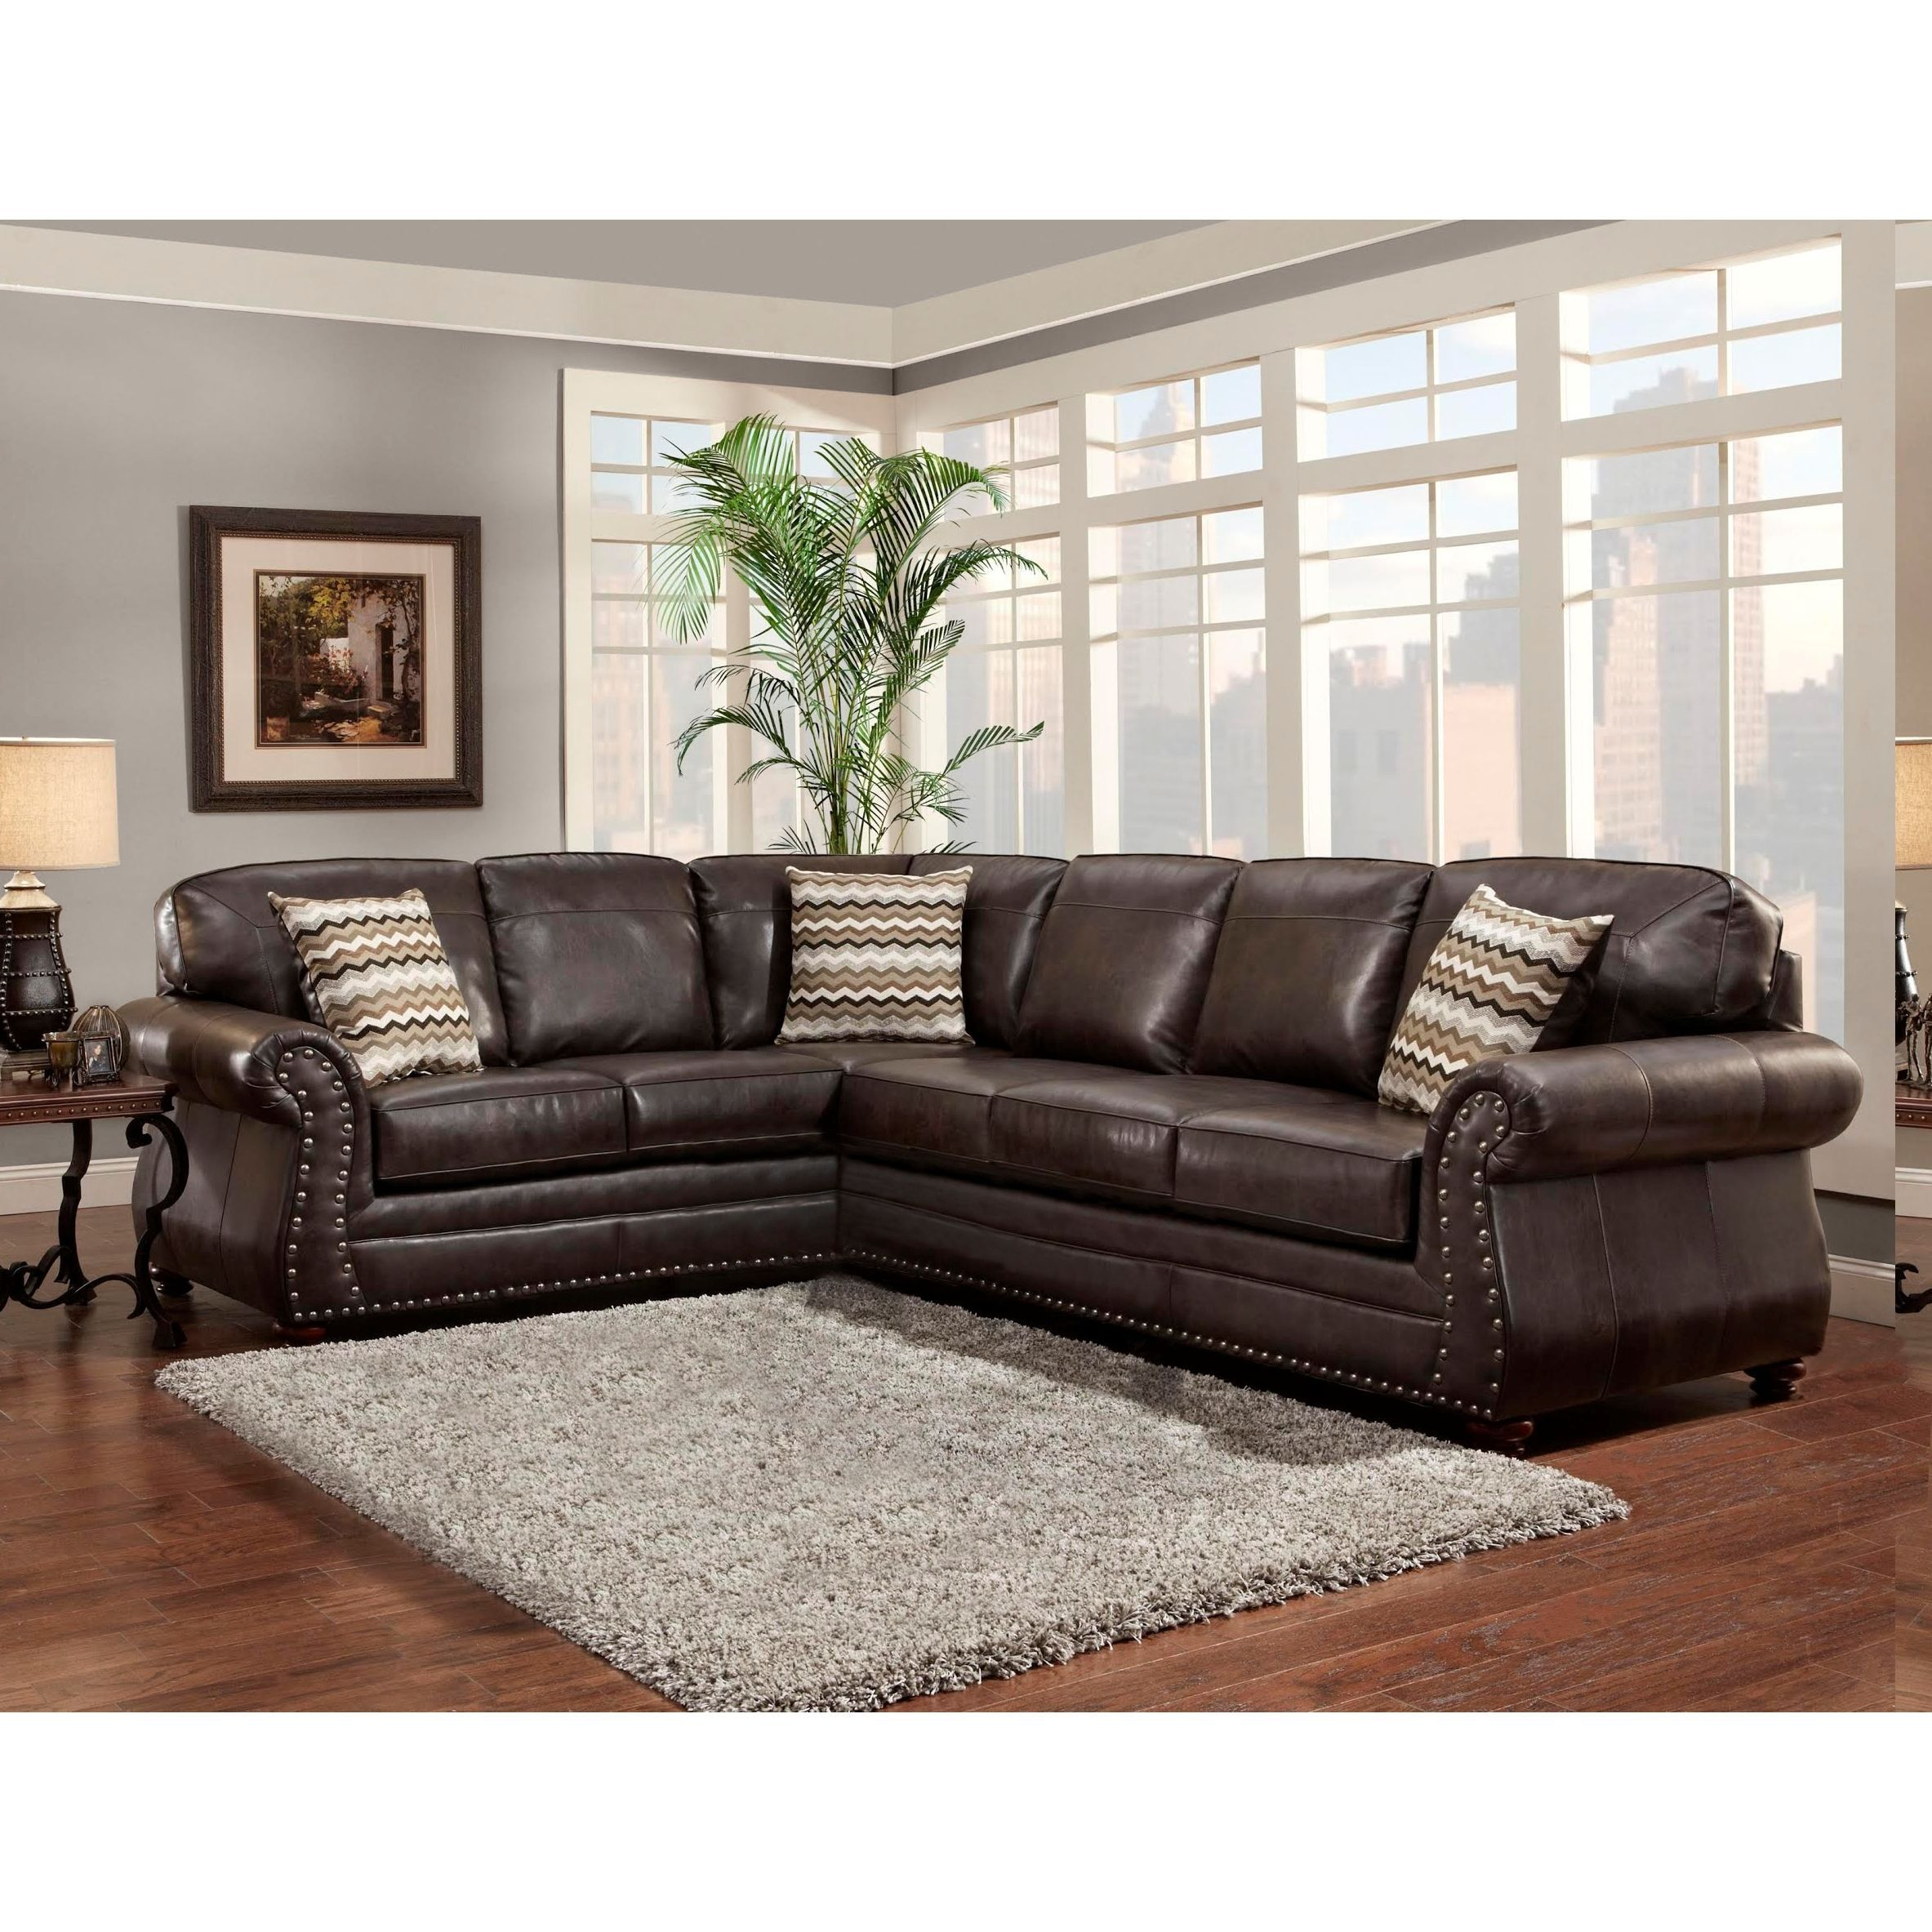 Beige brown grey taupe leather 1500 sectional sofas for Brown taupe living room